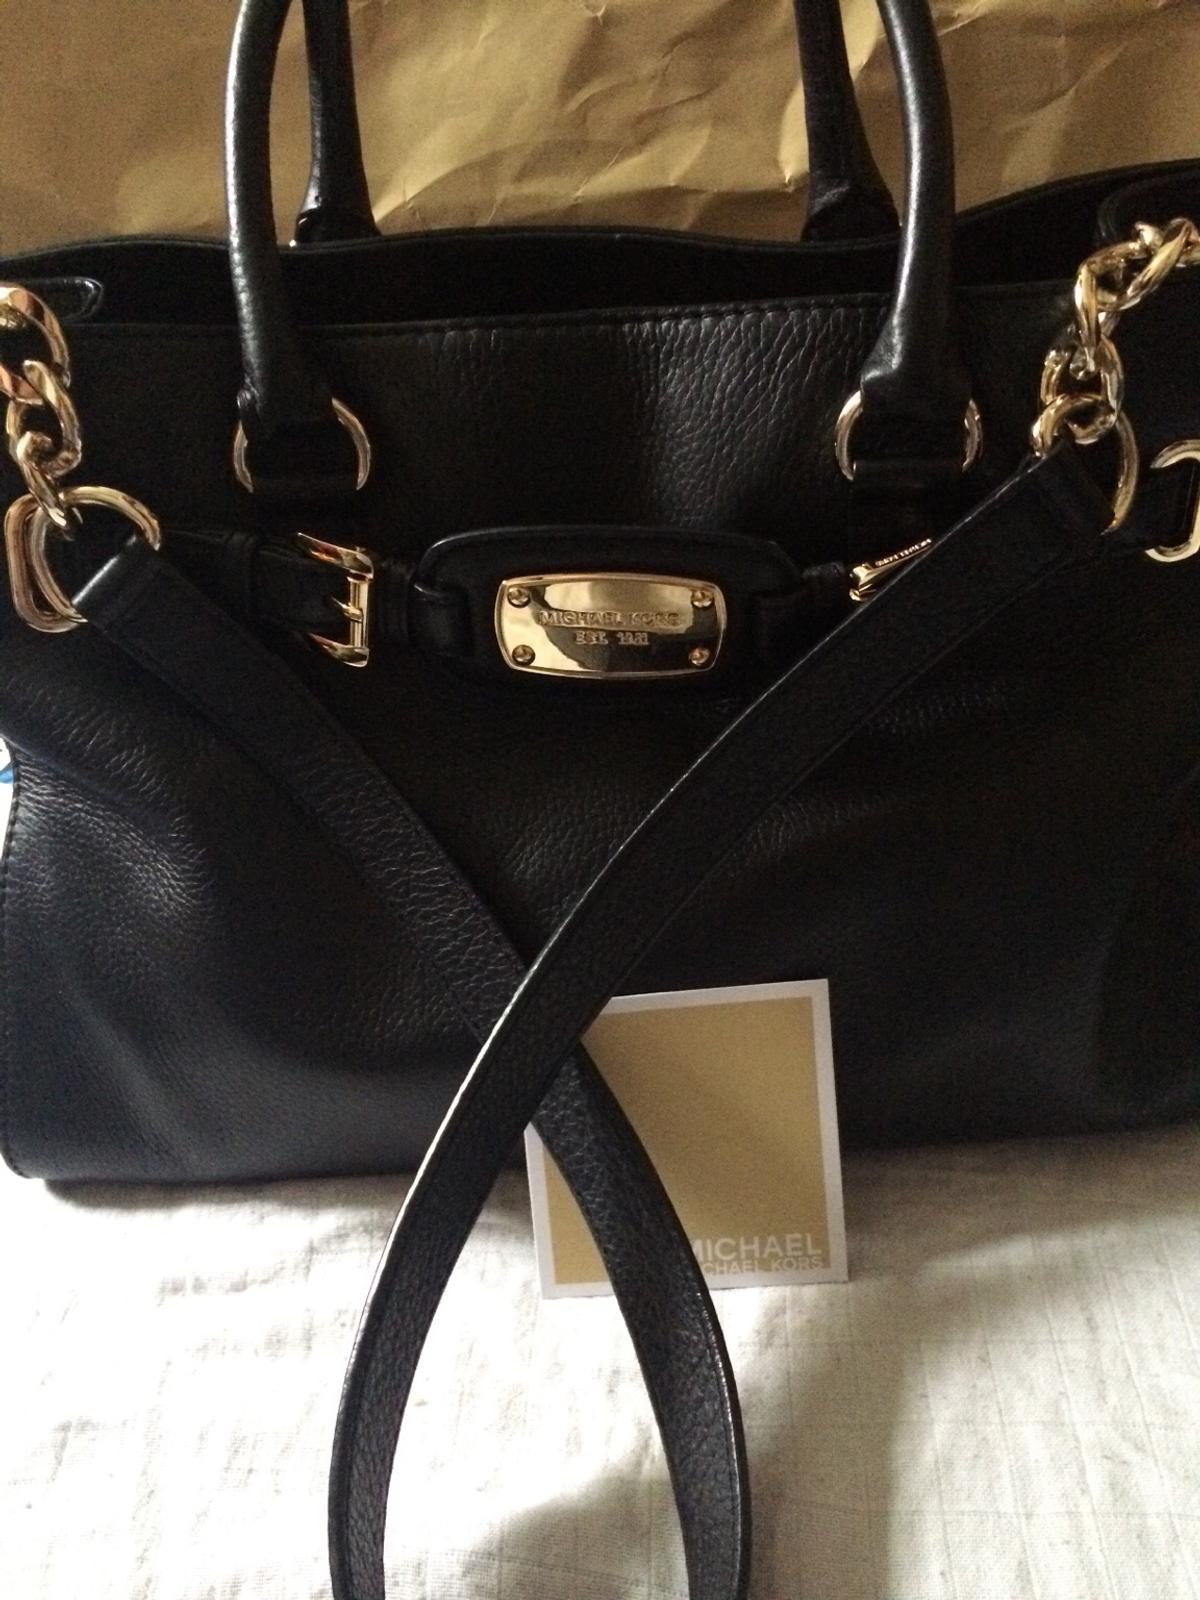 Original Michael Kors Tasche 'Hamilton' in 81243 München for